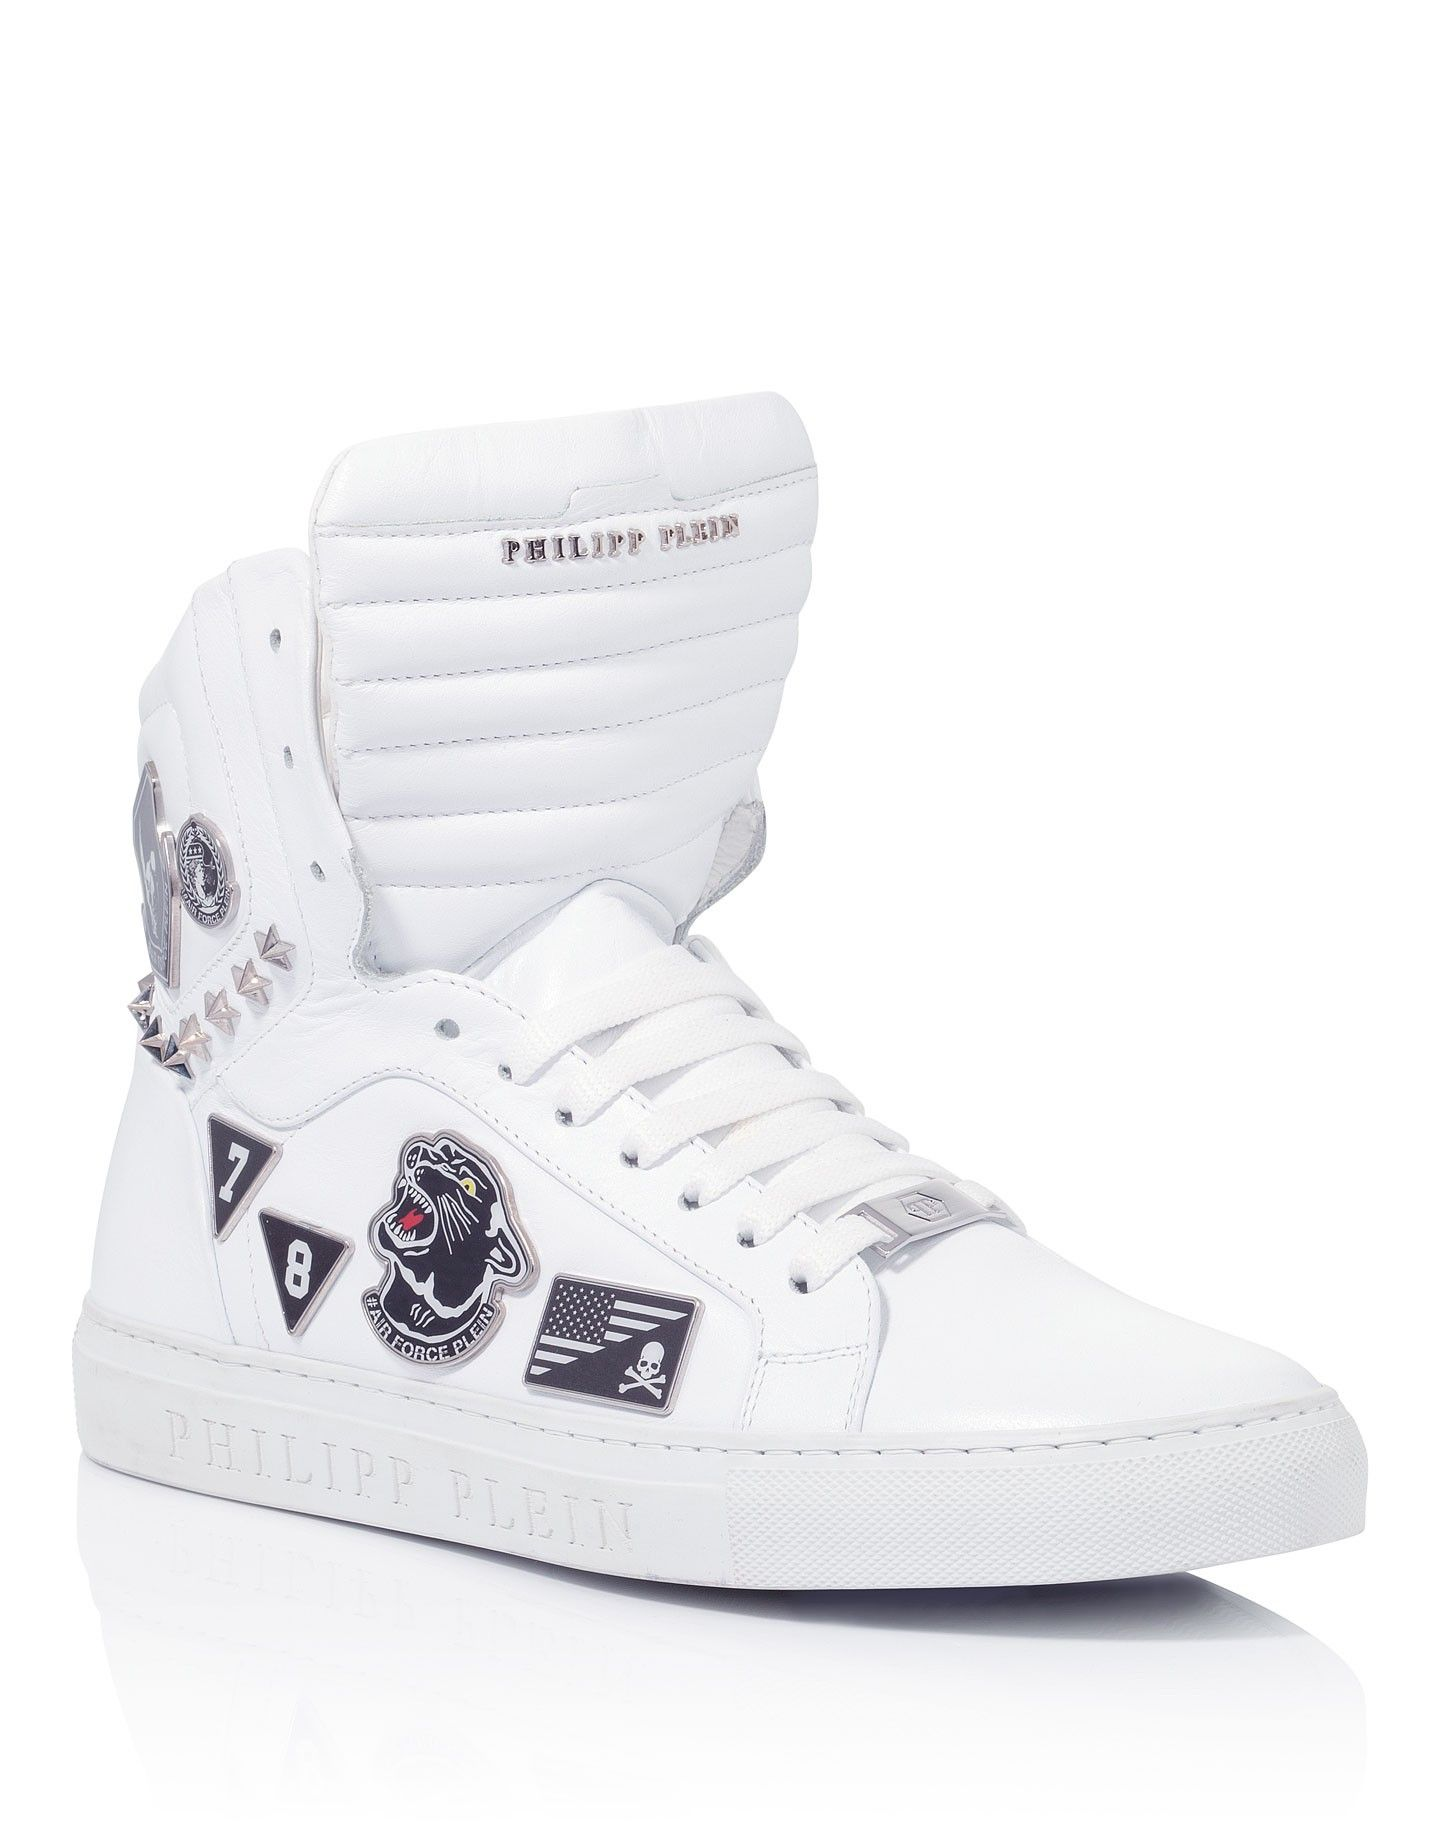 3488b02c17 PHILIPP PLEIN HIGH SNEAKER